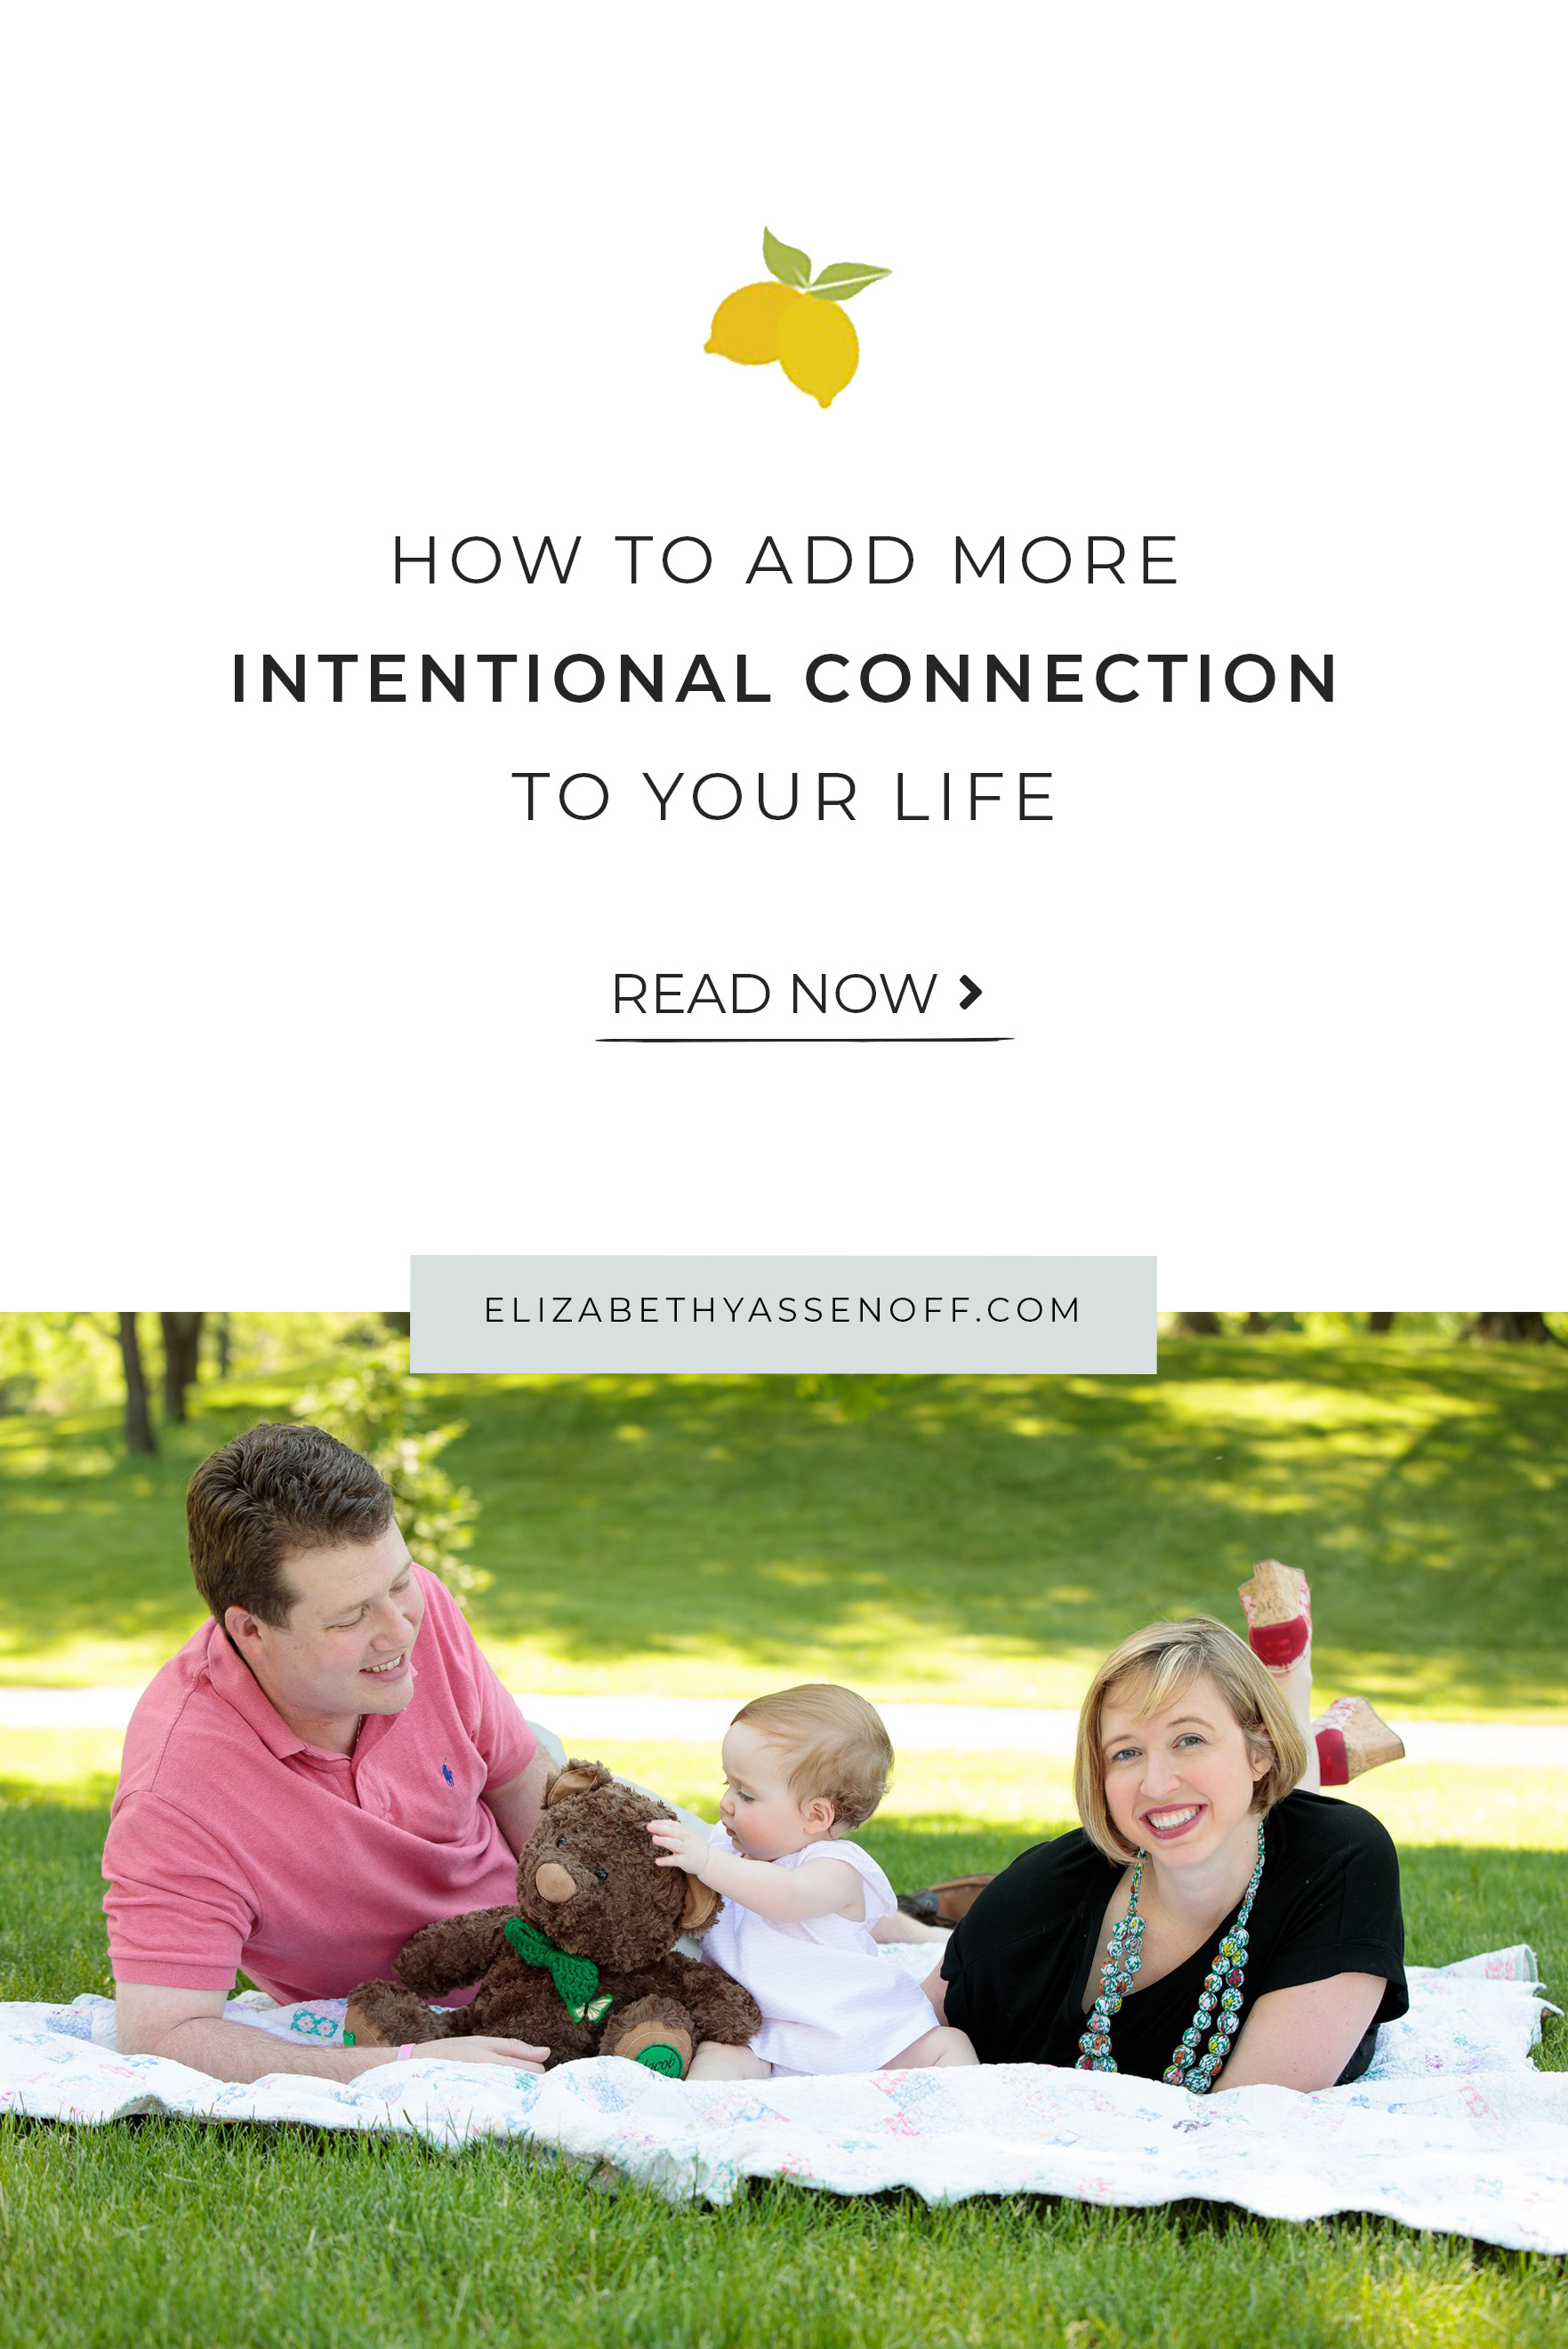 Humans crave connection. Read 5 ways to intentionally reach out, making space for that connection we crave.